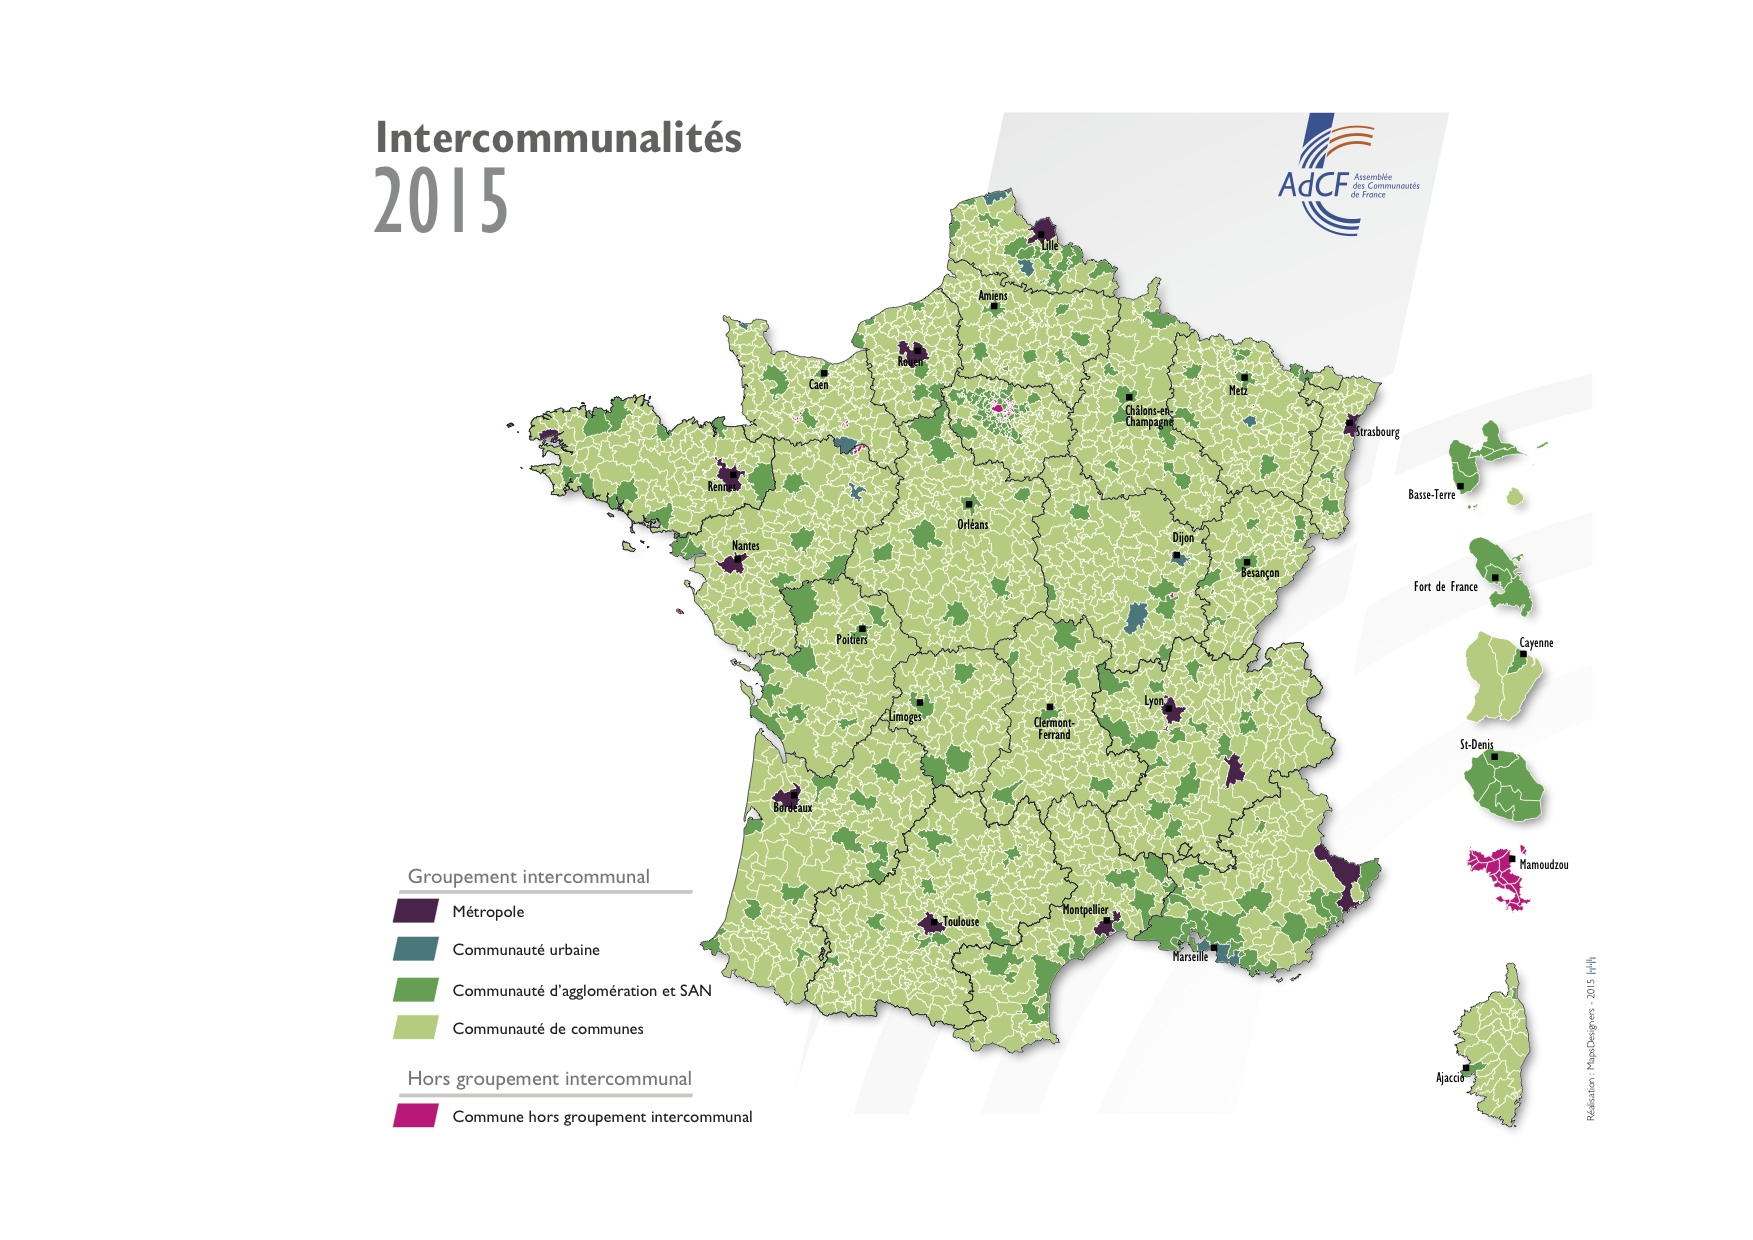 carte_interco_2015_adcf_